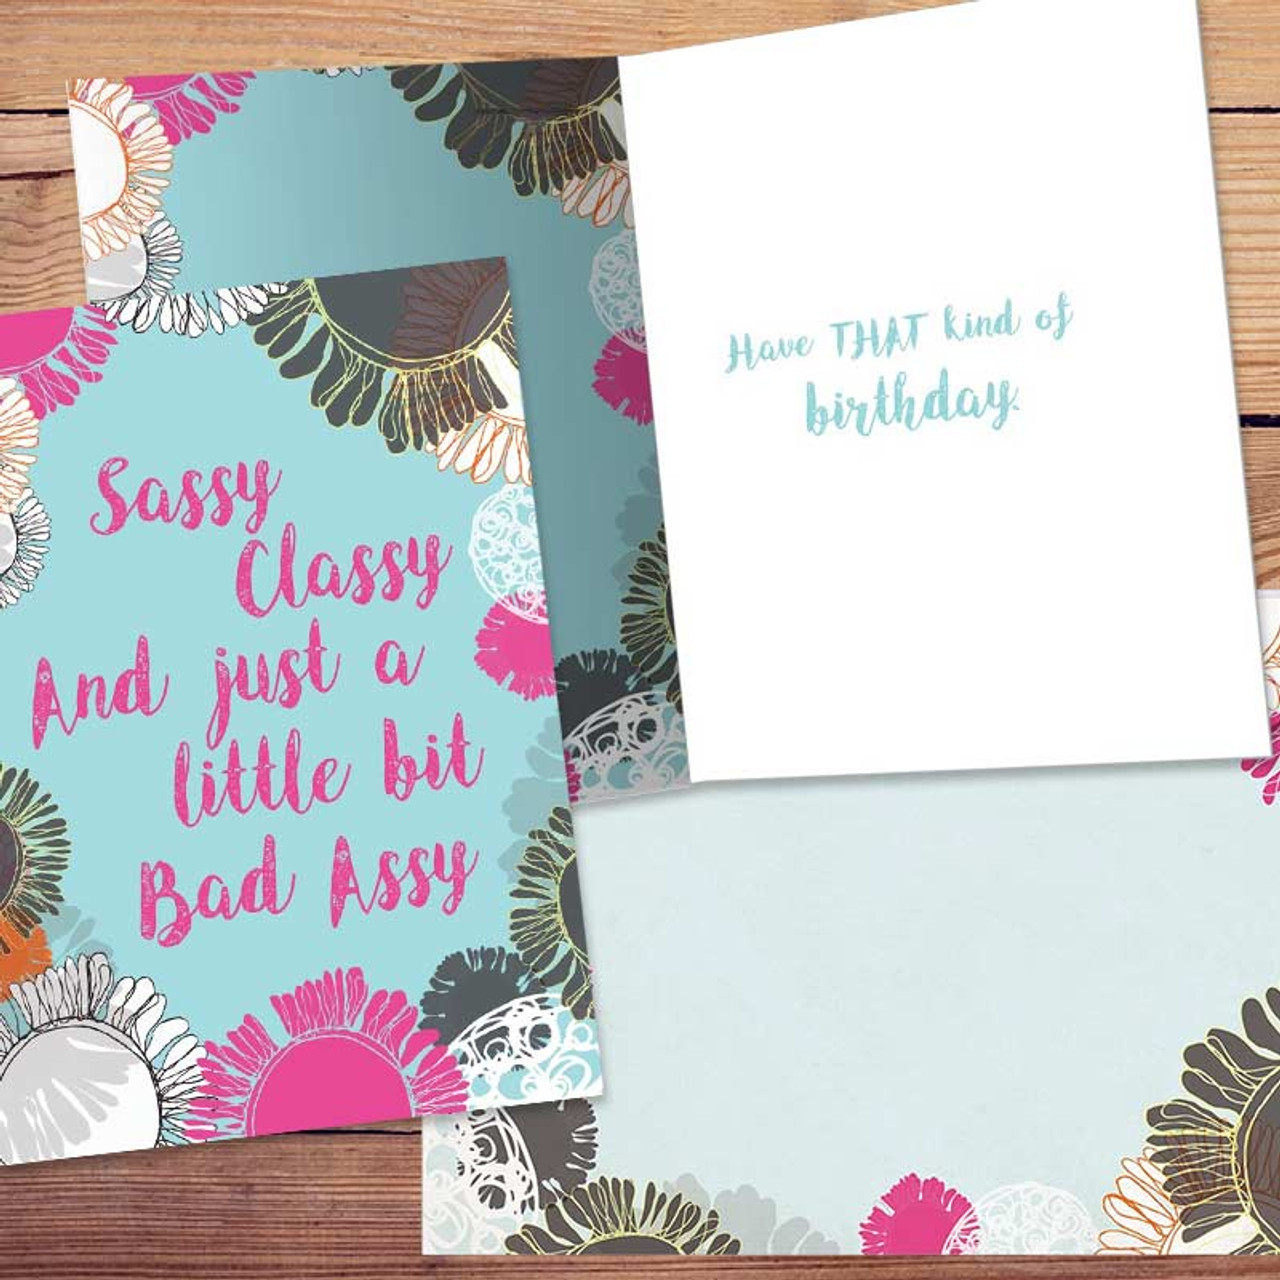 Sassy Classy + Just A Little Bit Bad Assy Birthday Card